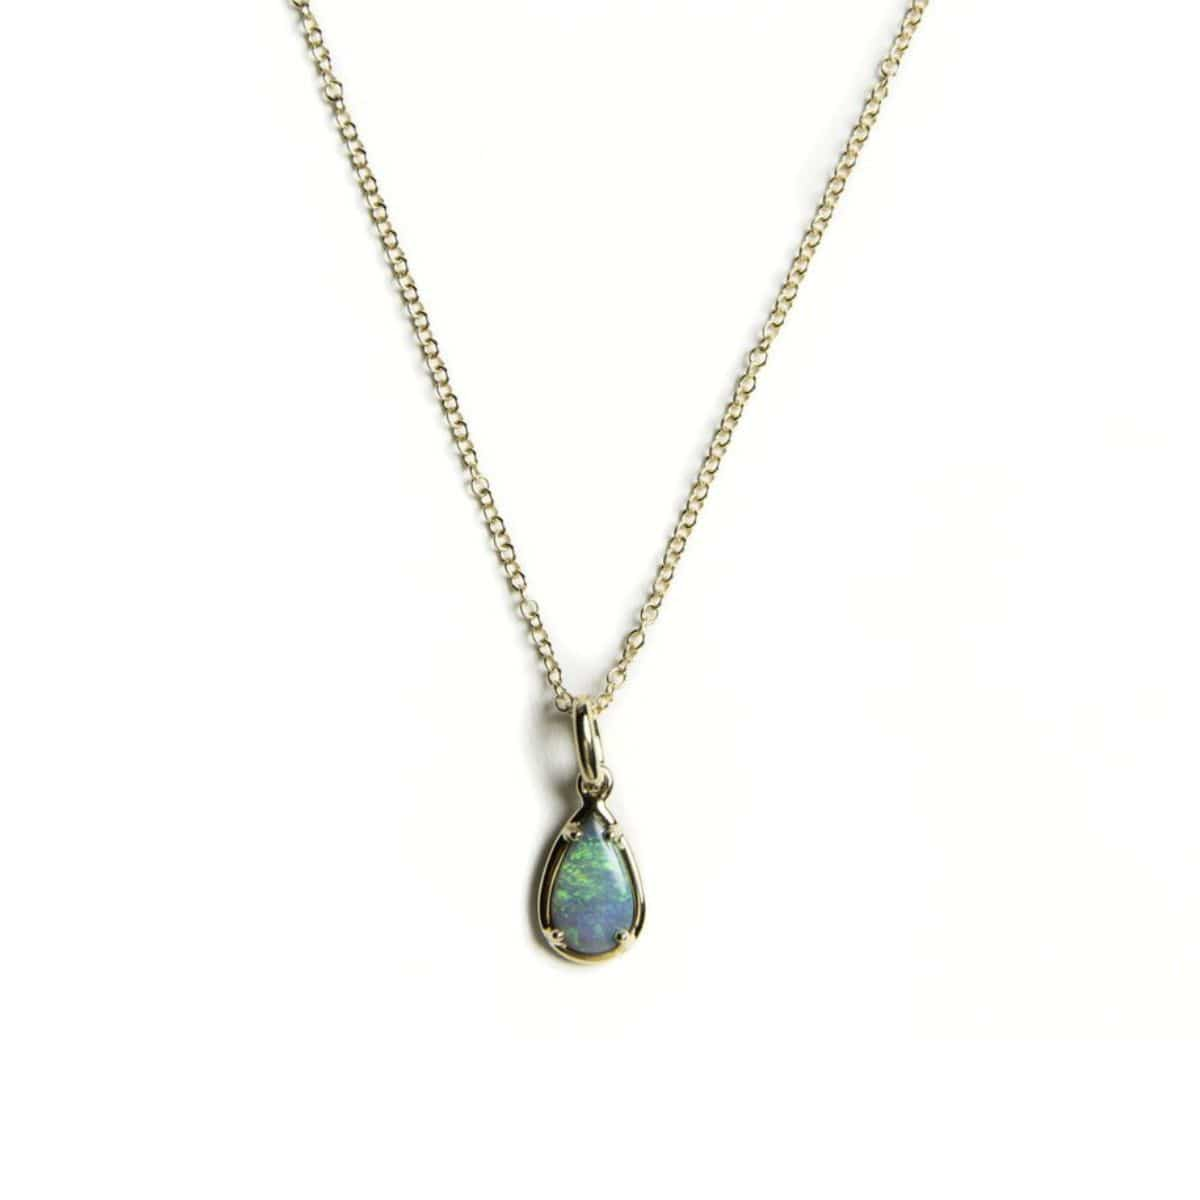 Blue Green Pear Shape Opal 18K Gold Necklace